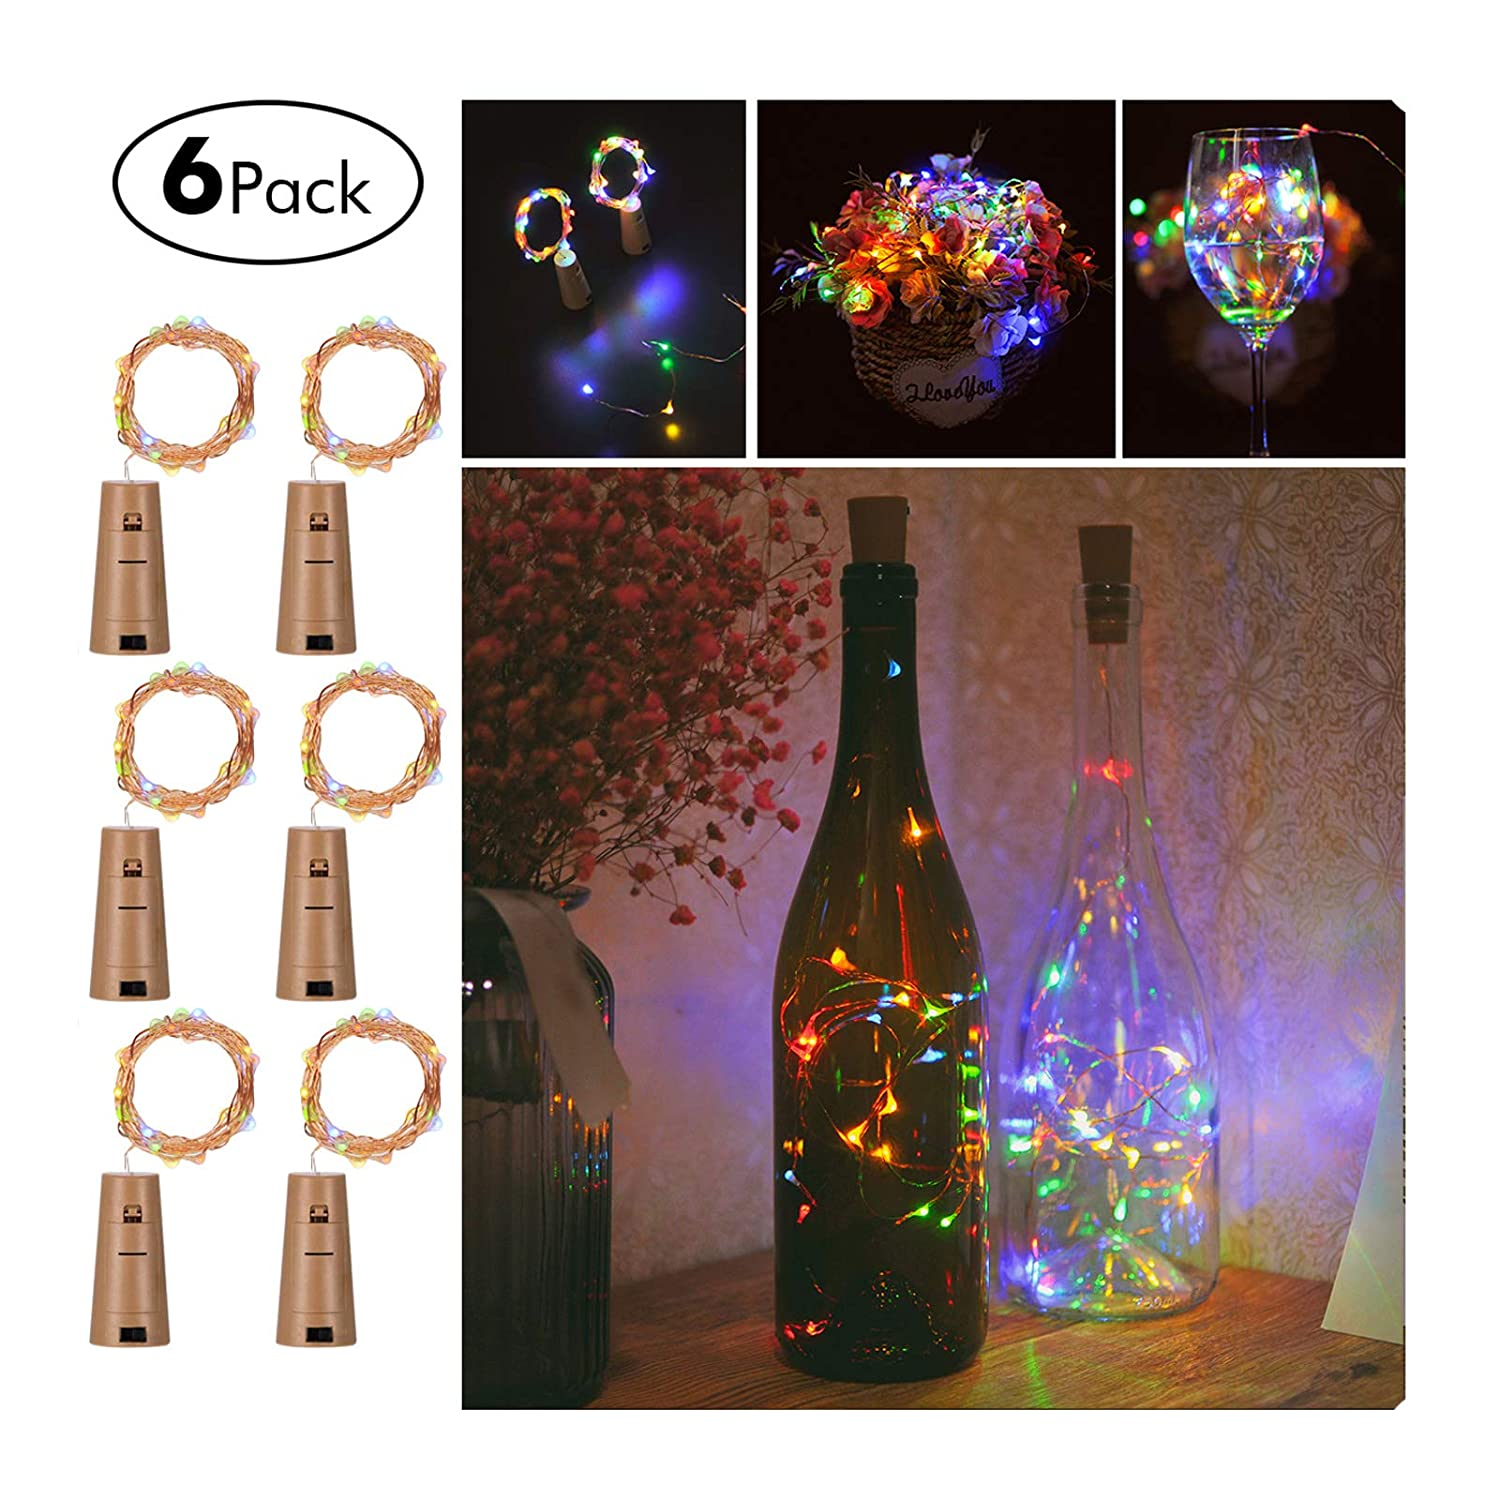 Wine Bottles String Lights, FairyDecor 6 Packs Micro Artificial Cork Copper Wire Starry Fairy Lights, Battery Operated Lights for Bedroom, Parties, Wedding, Decoration(6 Packs 2m/7.2ft,Mutil Color) UK-JPXD-SC-6